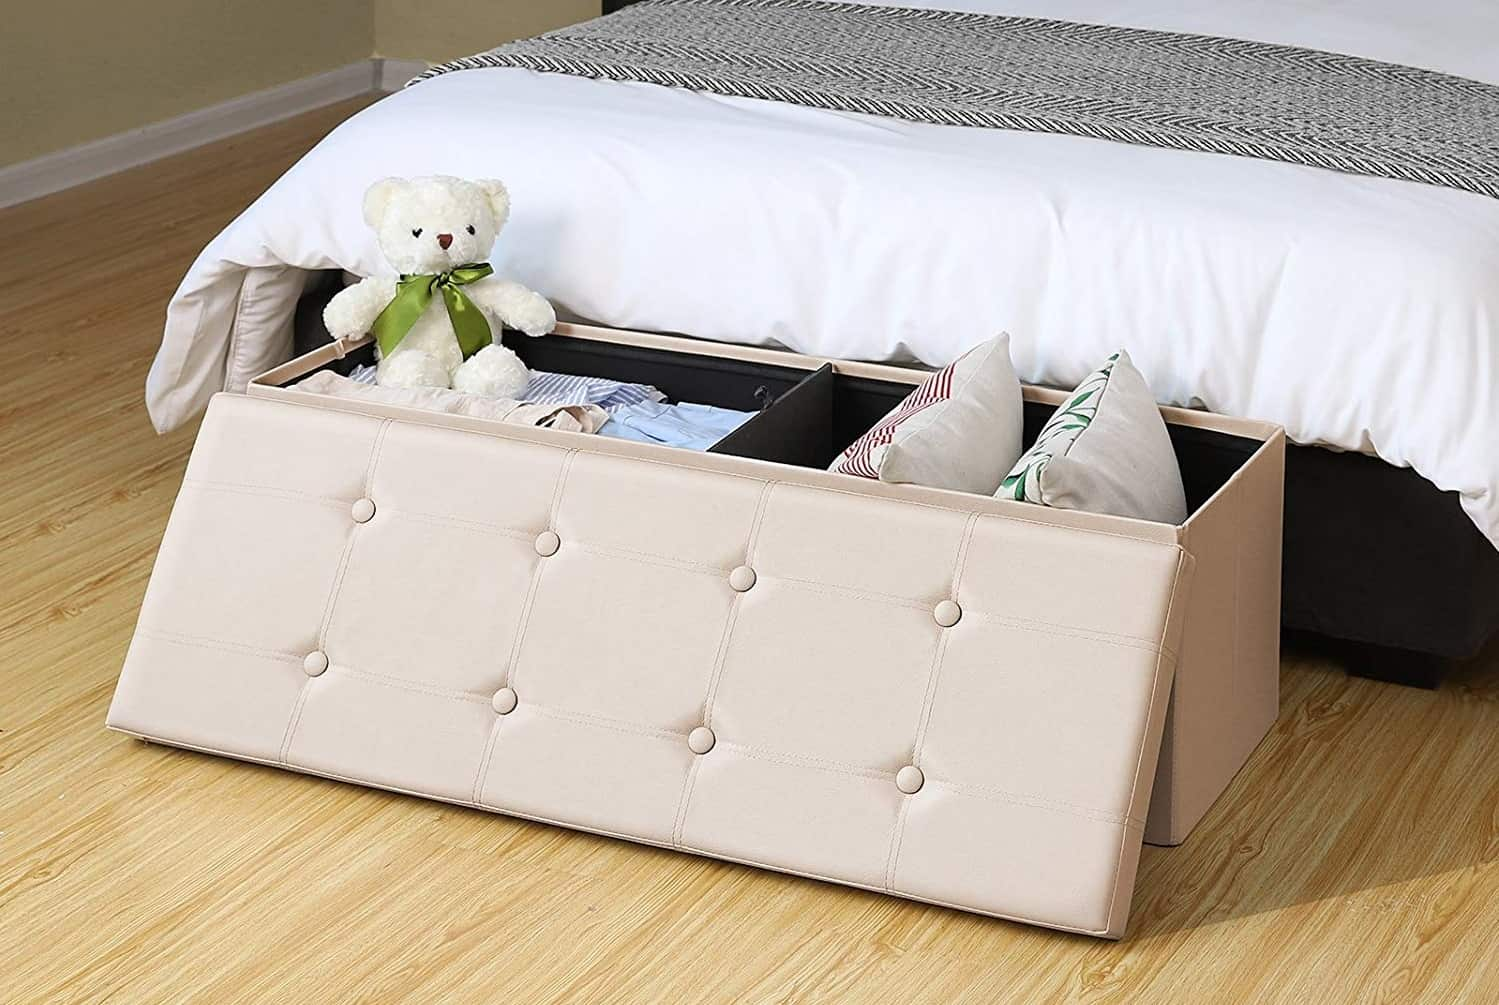 Storage Bench - Interior Storage